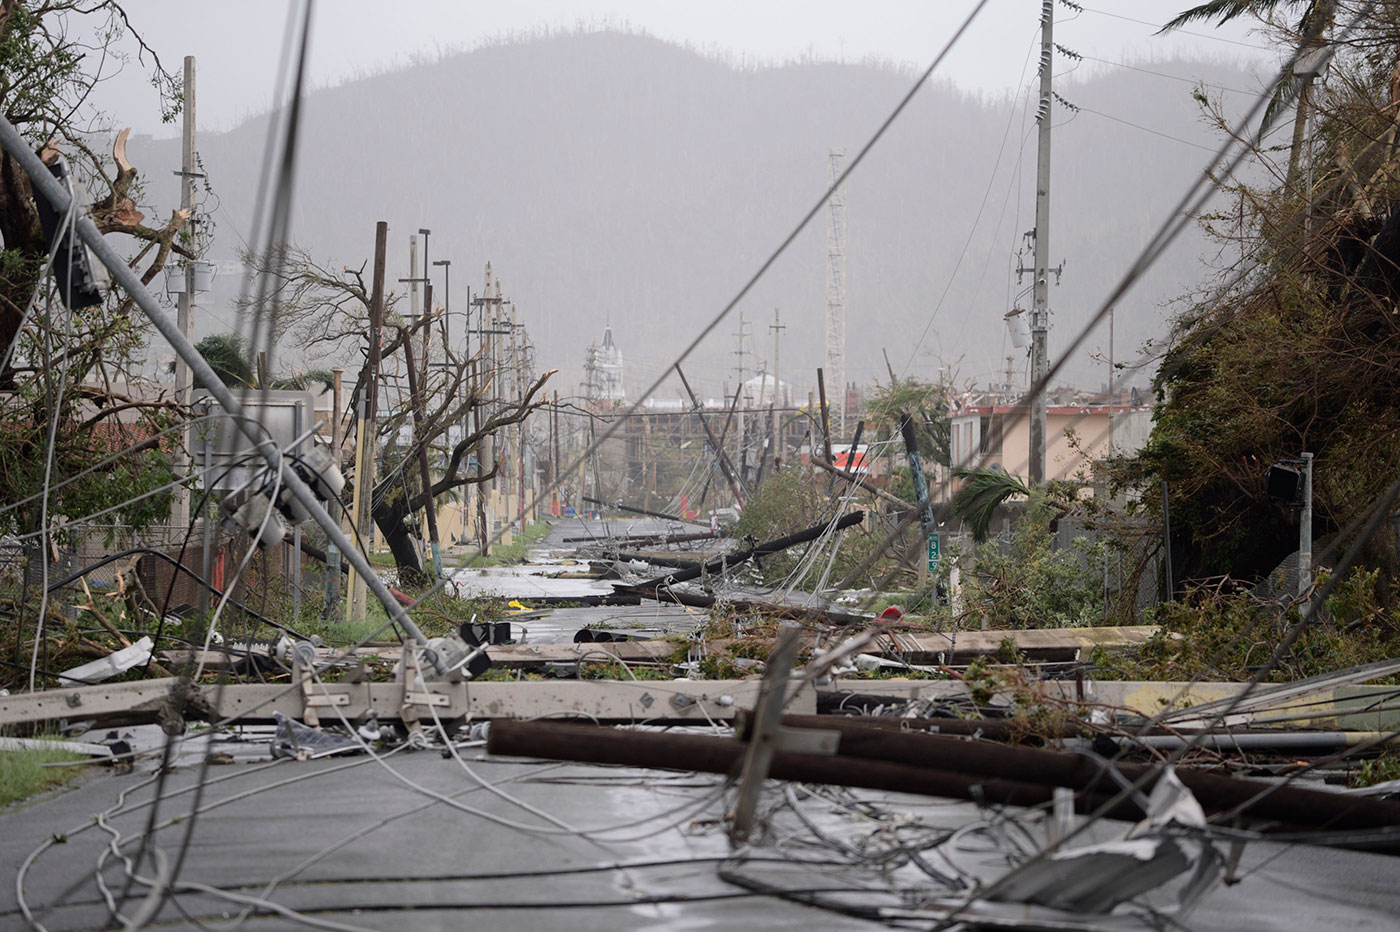 Disaster site in Puerto Rico